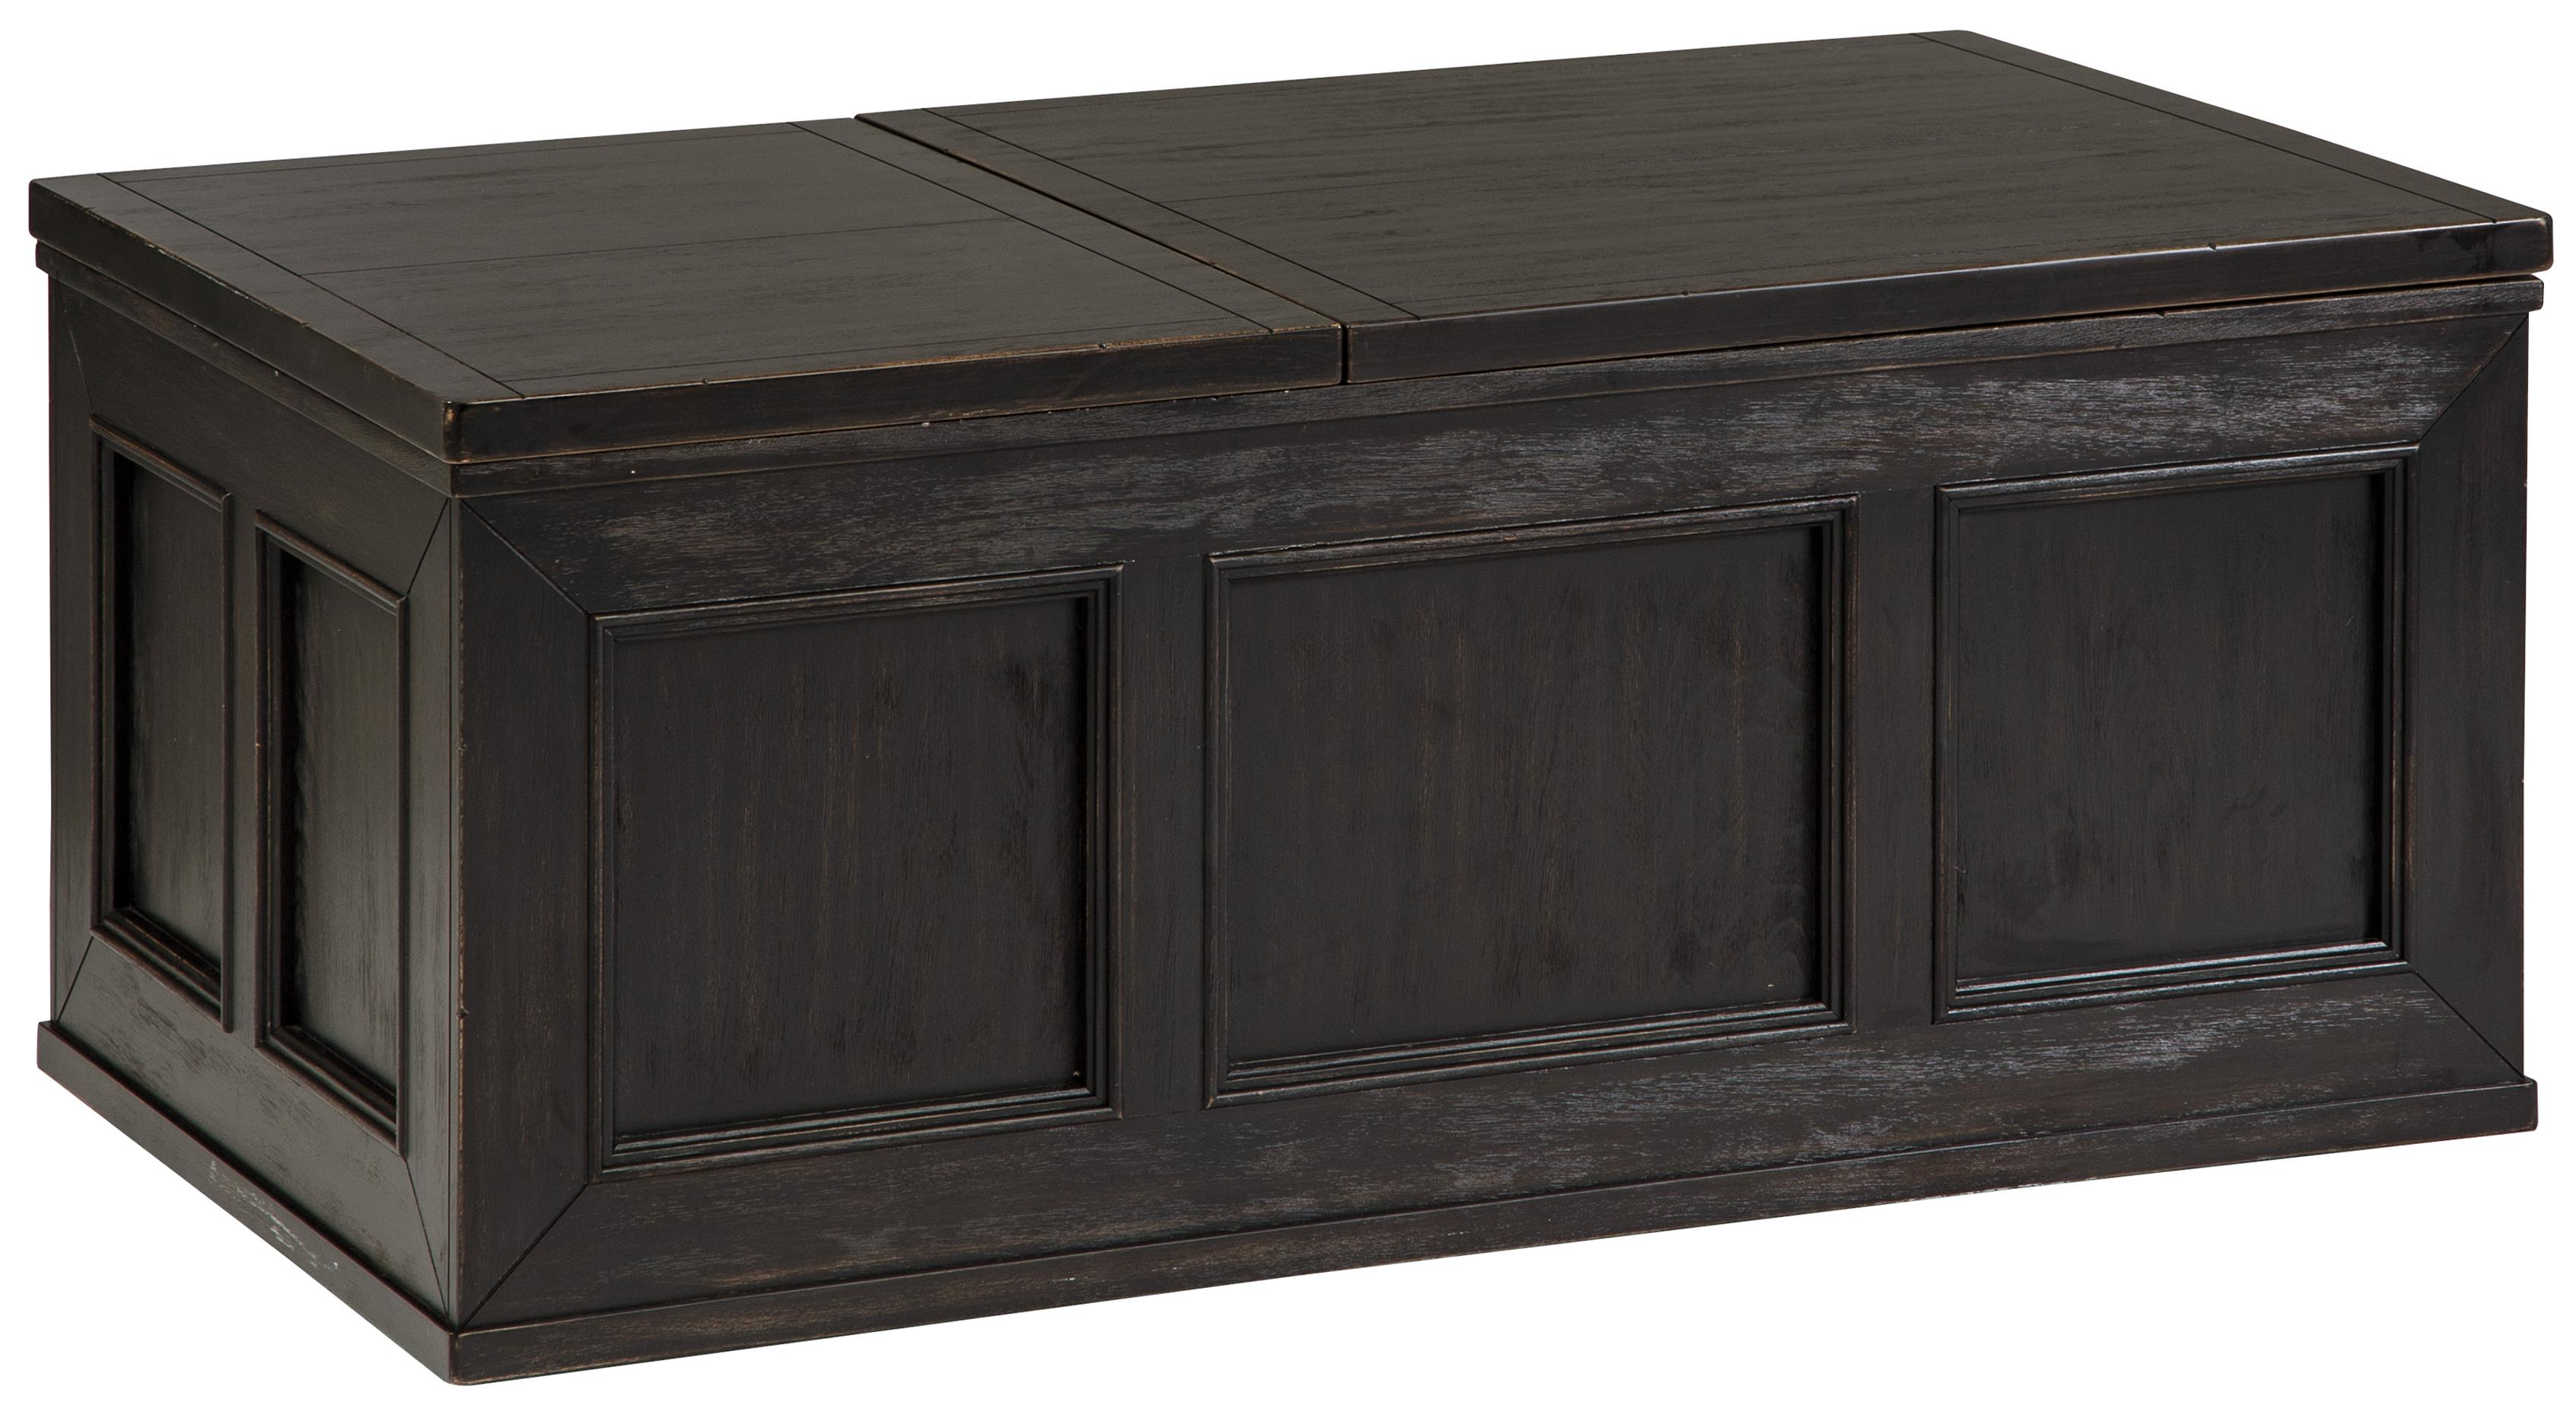 Rustic Distressed Black Trunk Style Lift Top Cocktail Table w